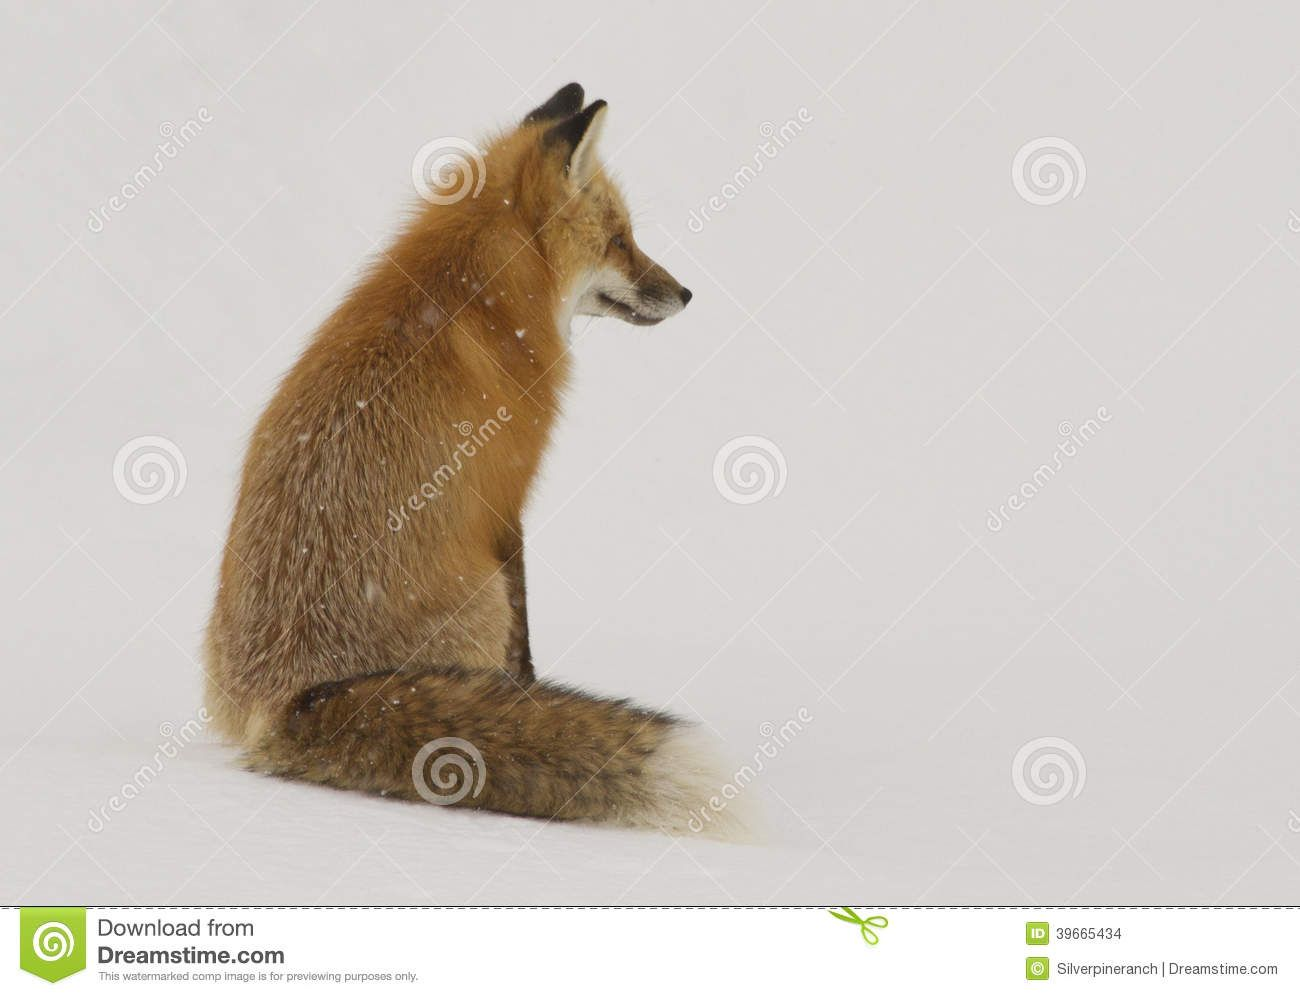 460 best foxes images on pinterest red fox foxes and fox